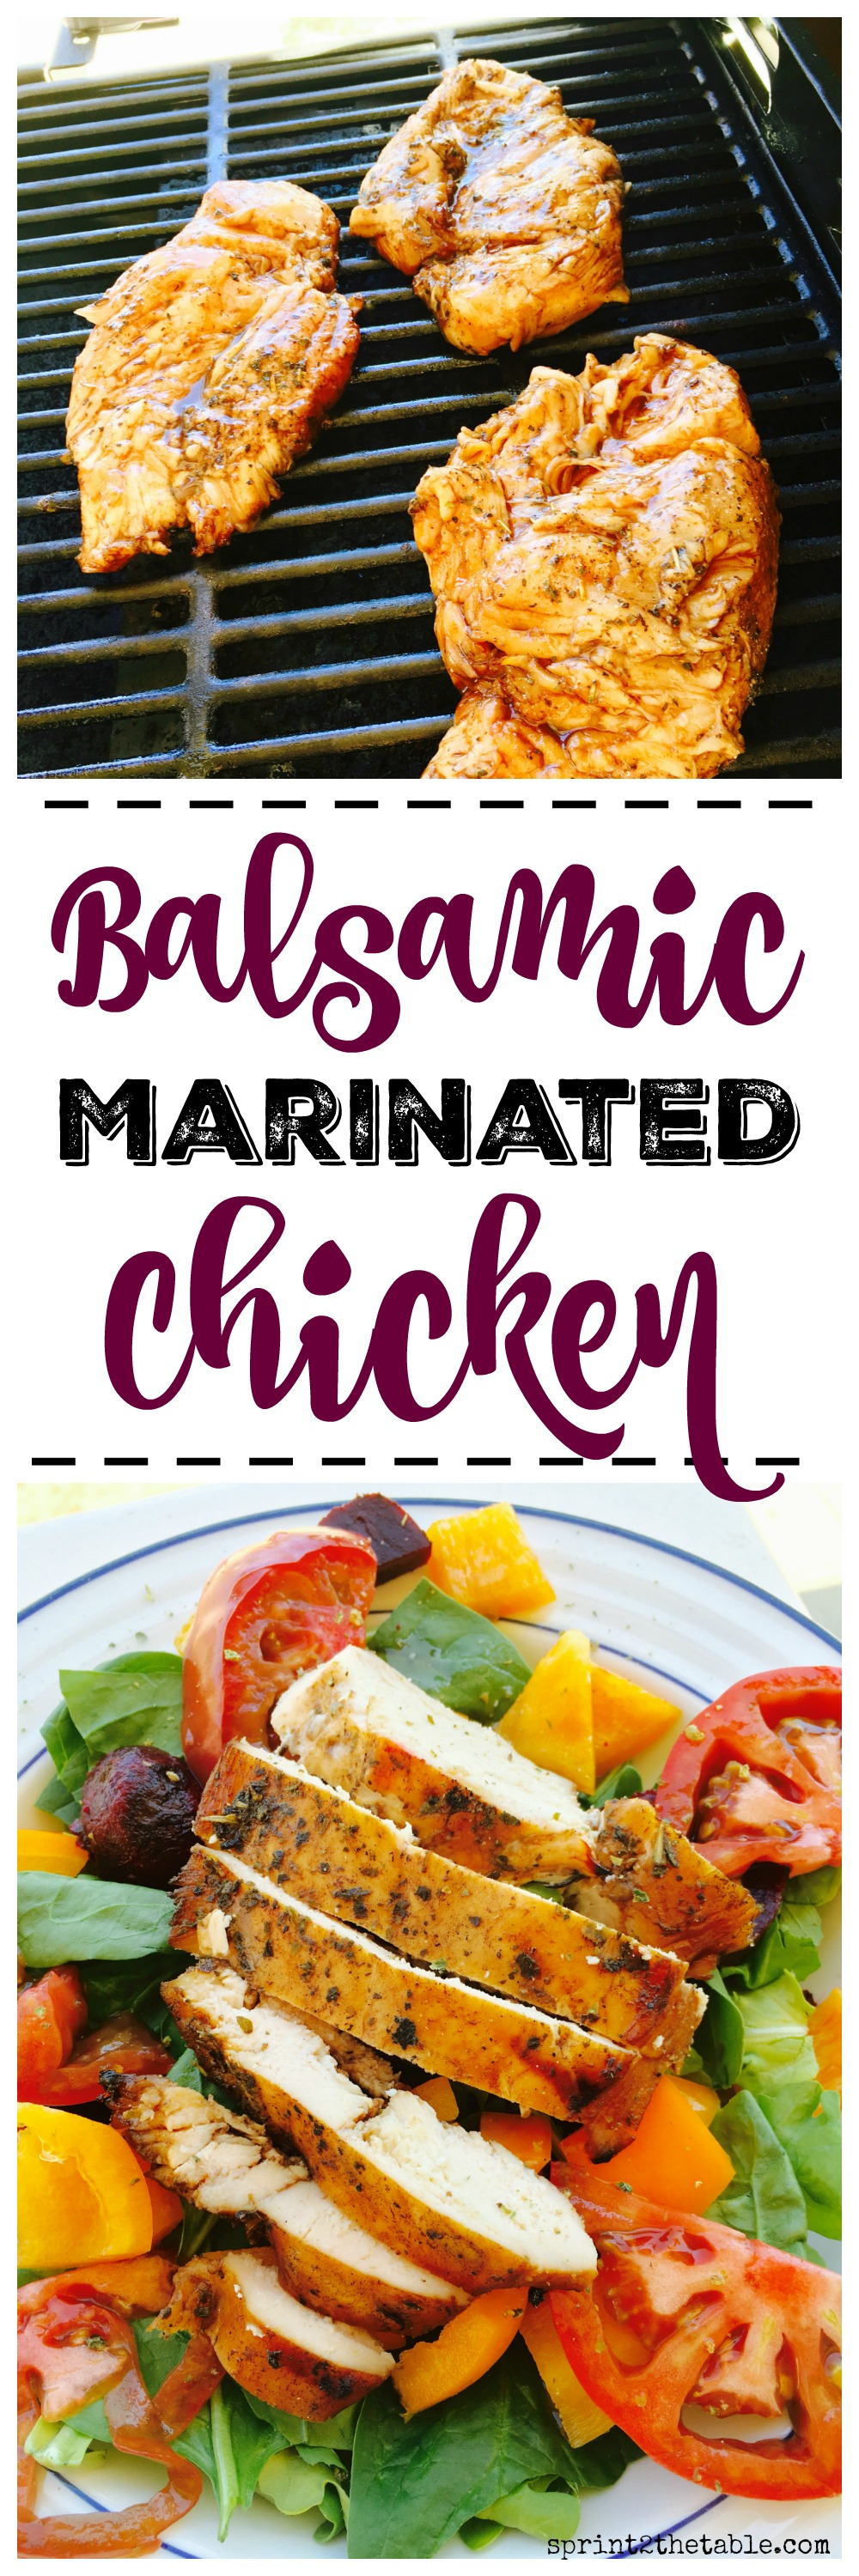 this-balsamic-marinated-chicken-recipe-is-incredibly-easy-to-make-and-packs-a-ton-of-flavor-your-whole-family-will-love